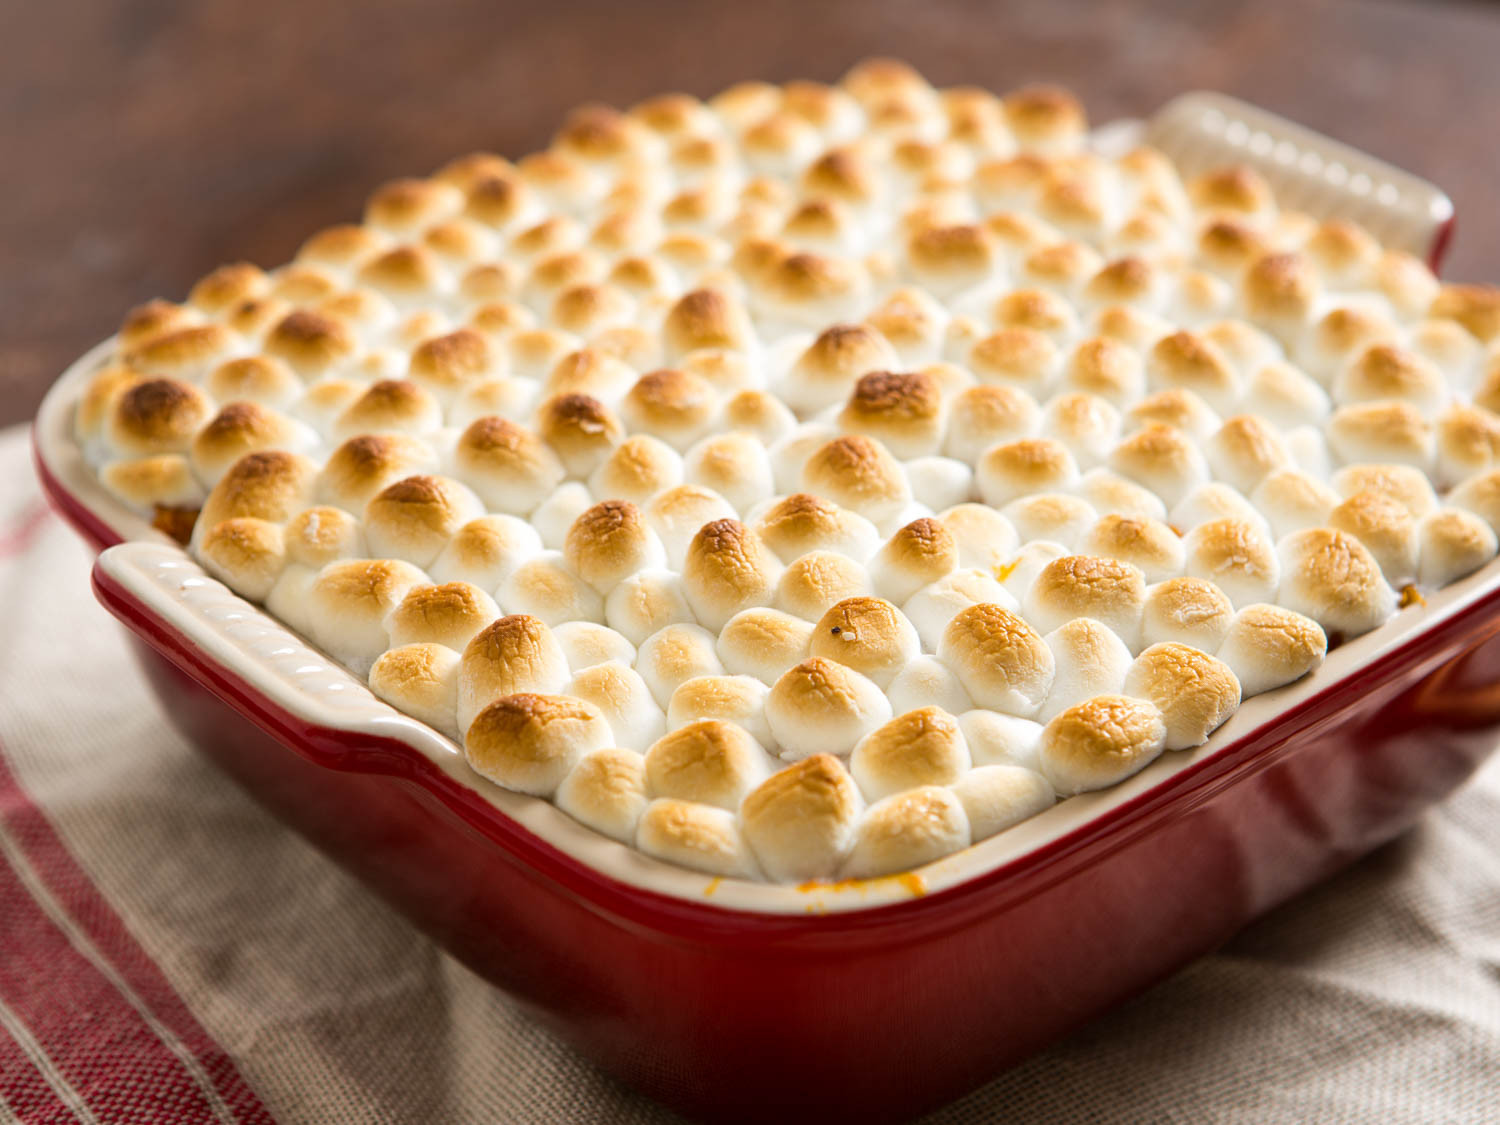 Sweet Potato Casserole Marshmallow  Meet the Grown Up Sweet Potato Casserole That Your Inner